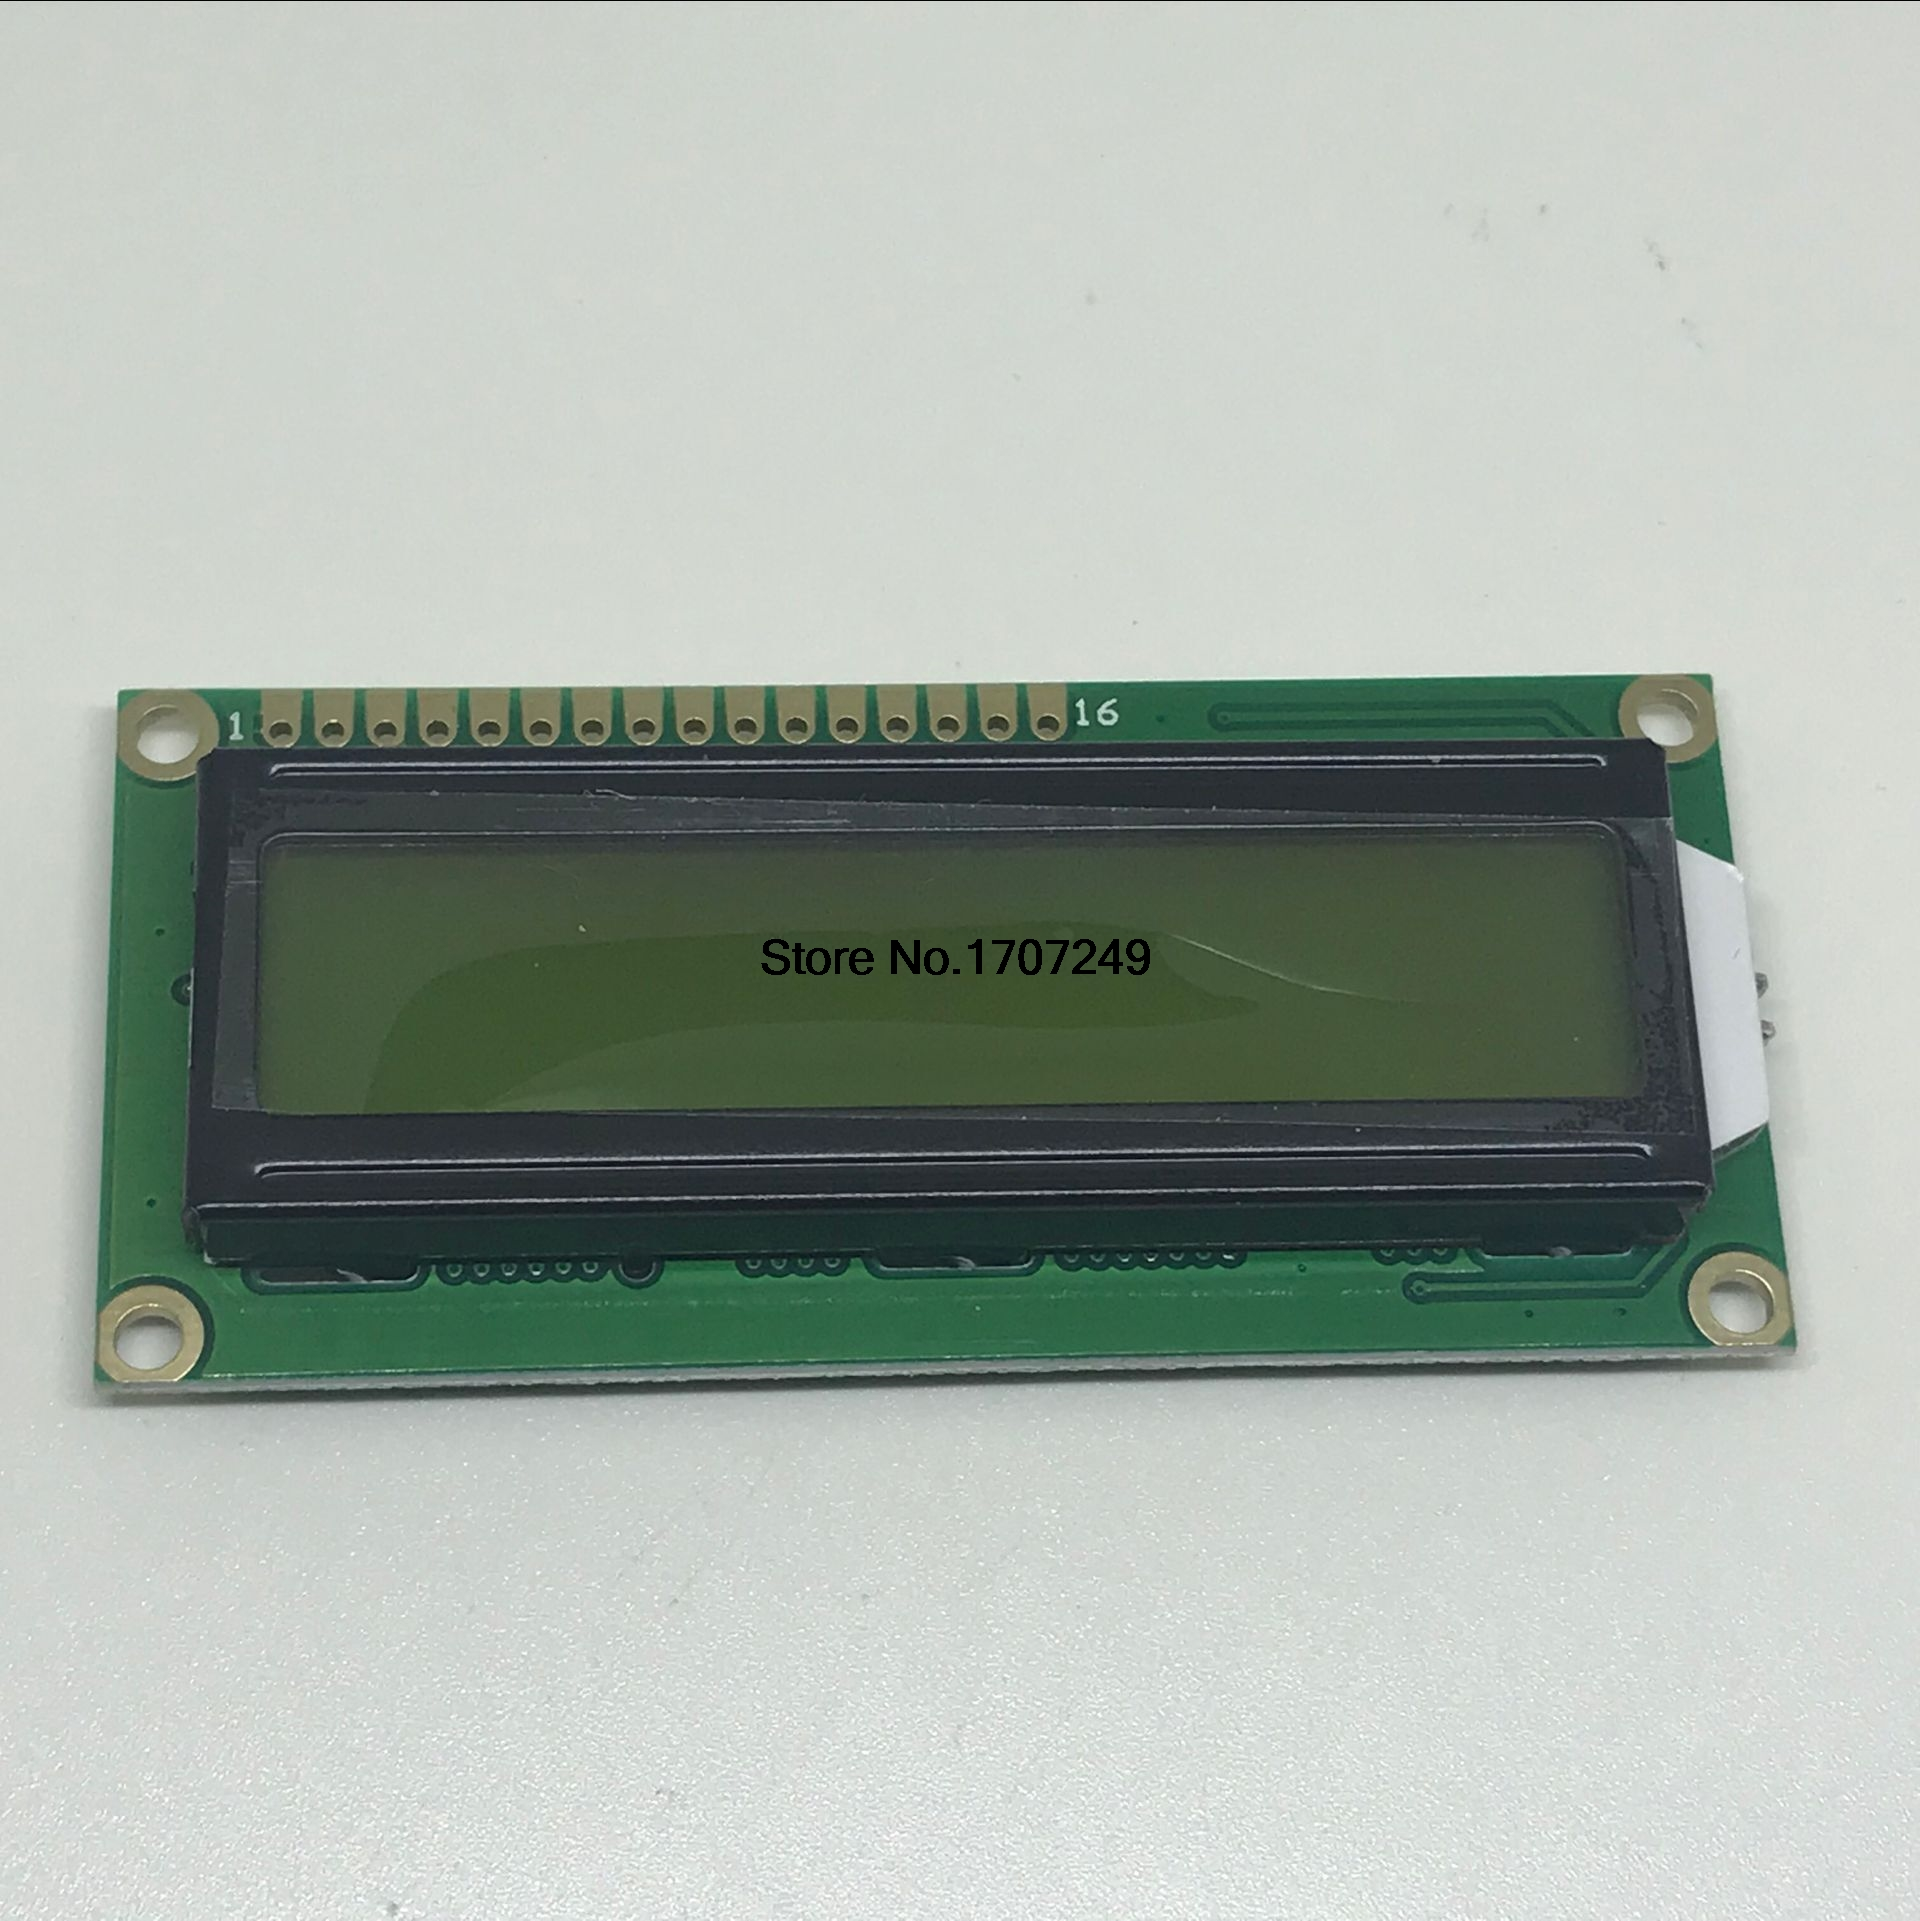 LCD module Yellow Green Screen 16x2 Character LCD Display Module 1602 LCD 5V Yellow Green backlight Black characters for arduino